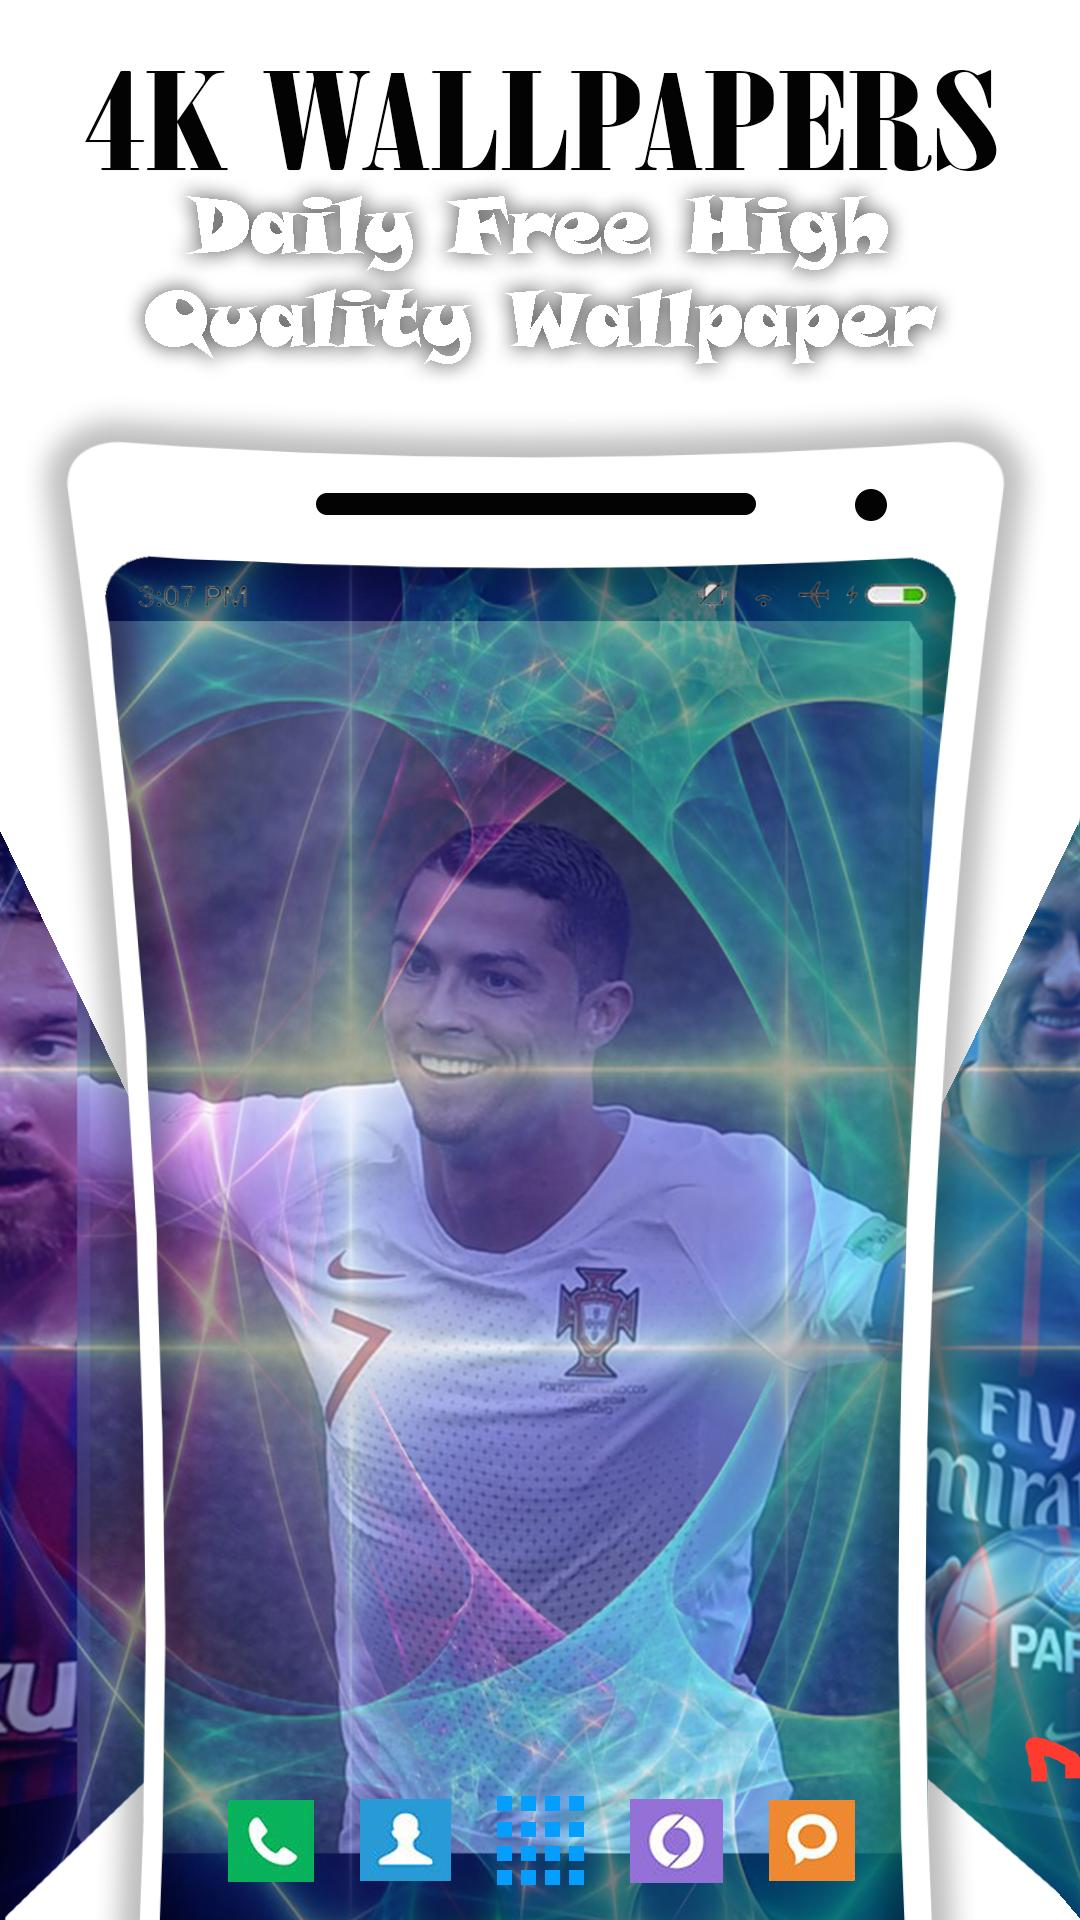 Football Cristiano Ronaldo Messi Wallpapers For Android Apk Download